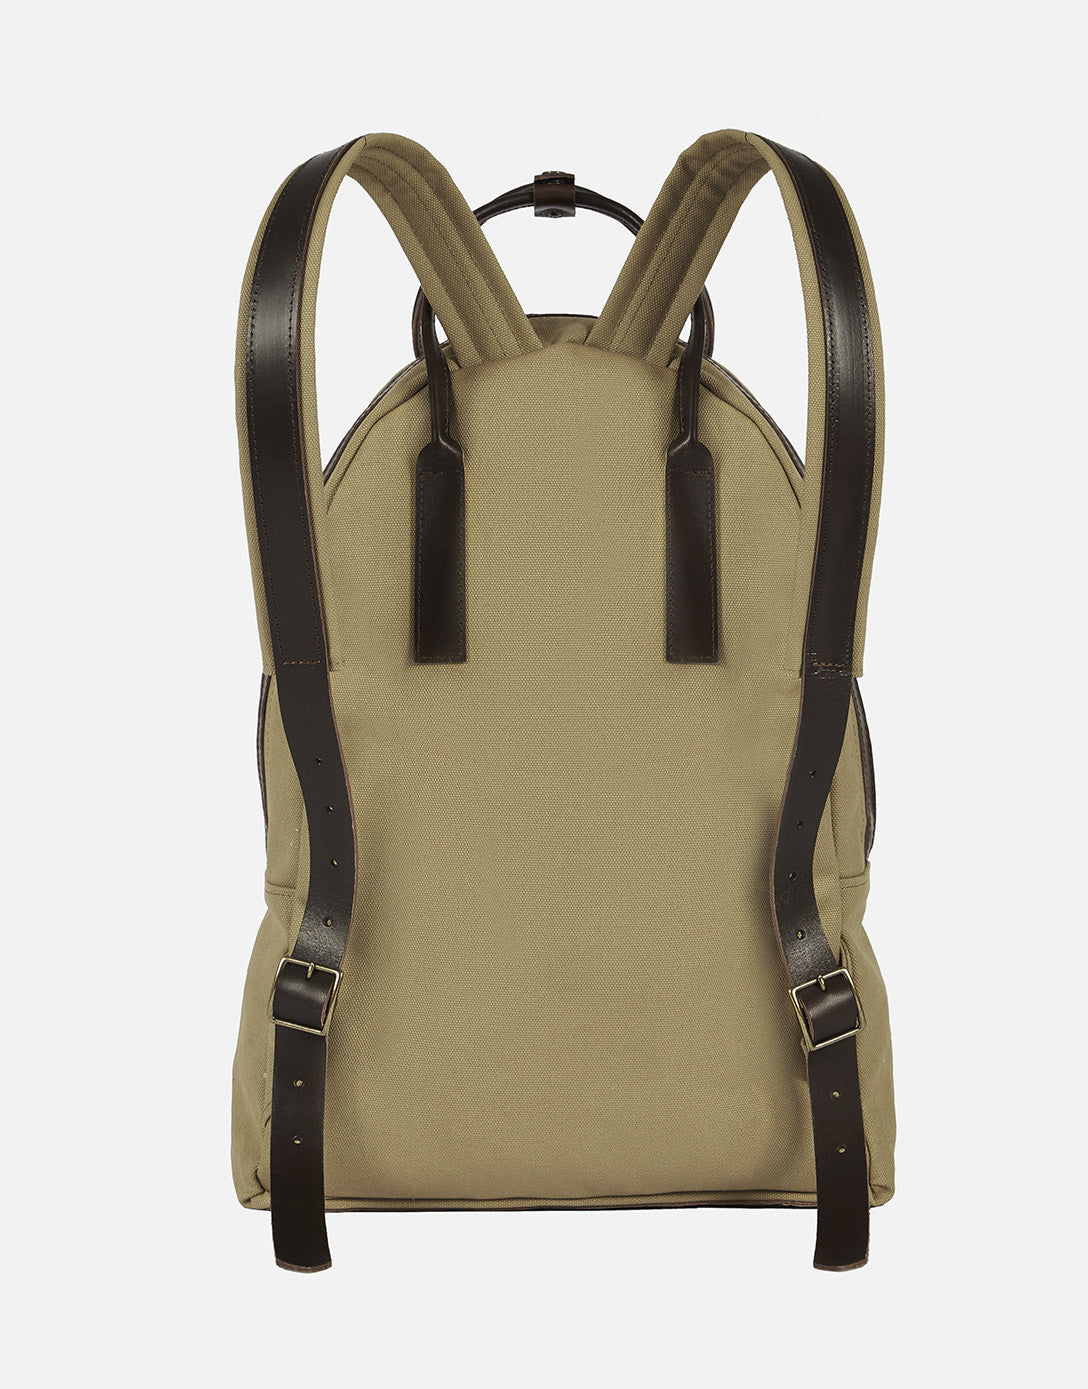 No. 12 - Backpack, Beige